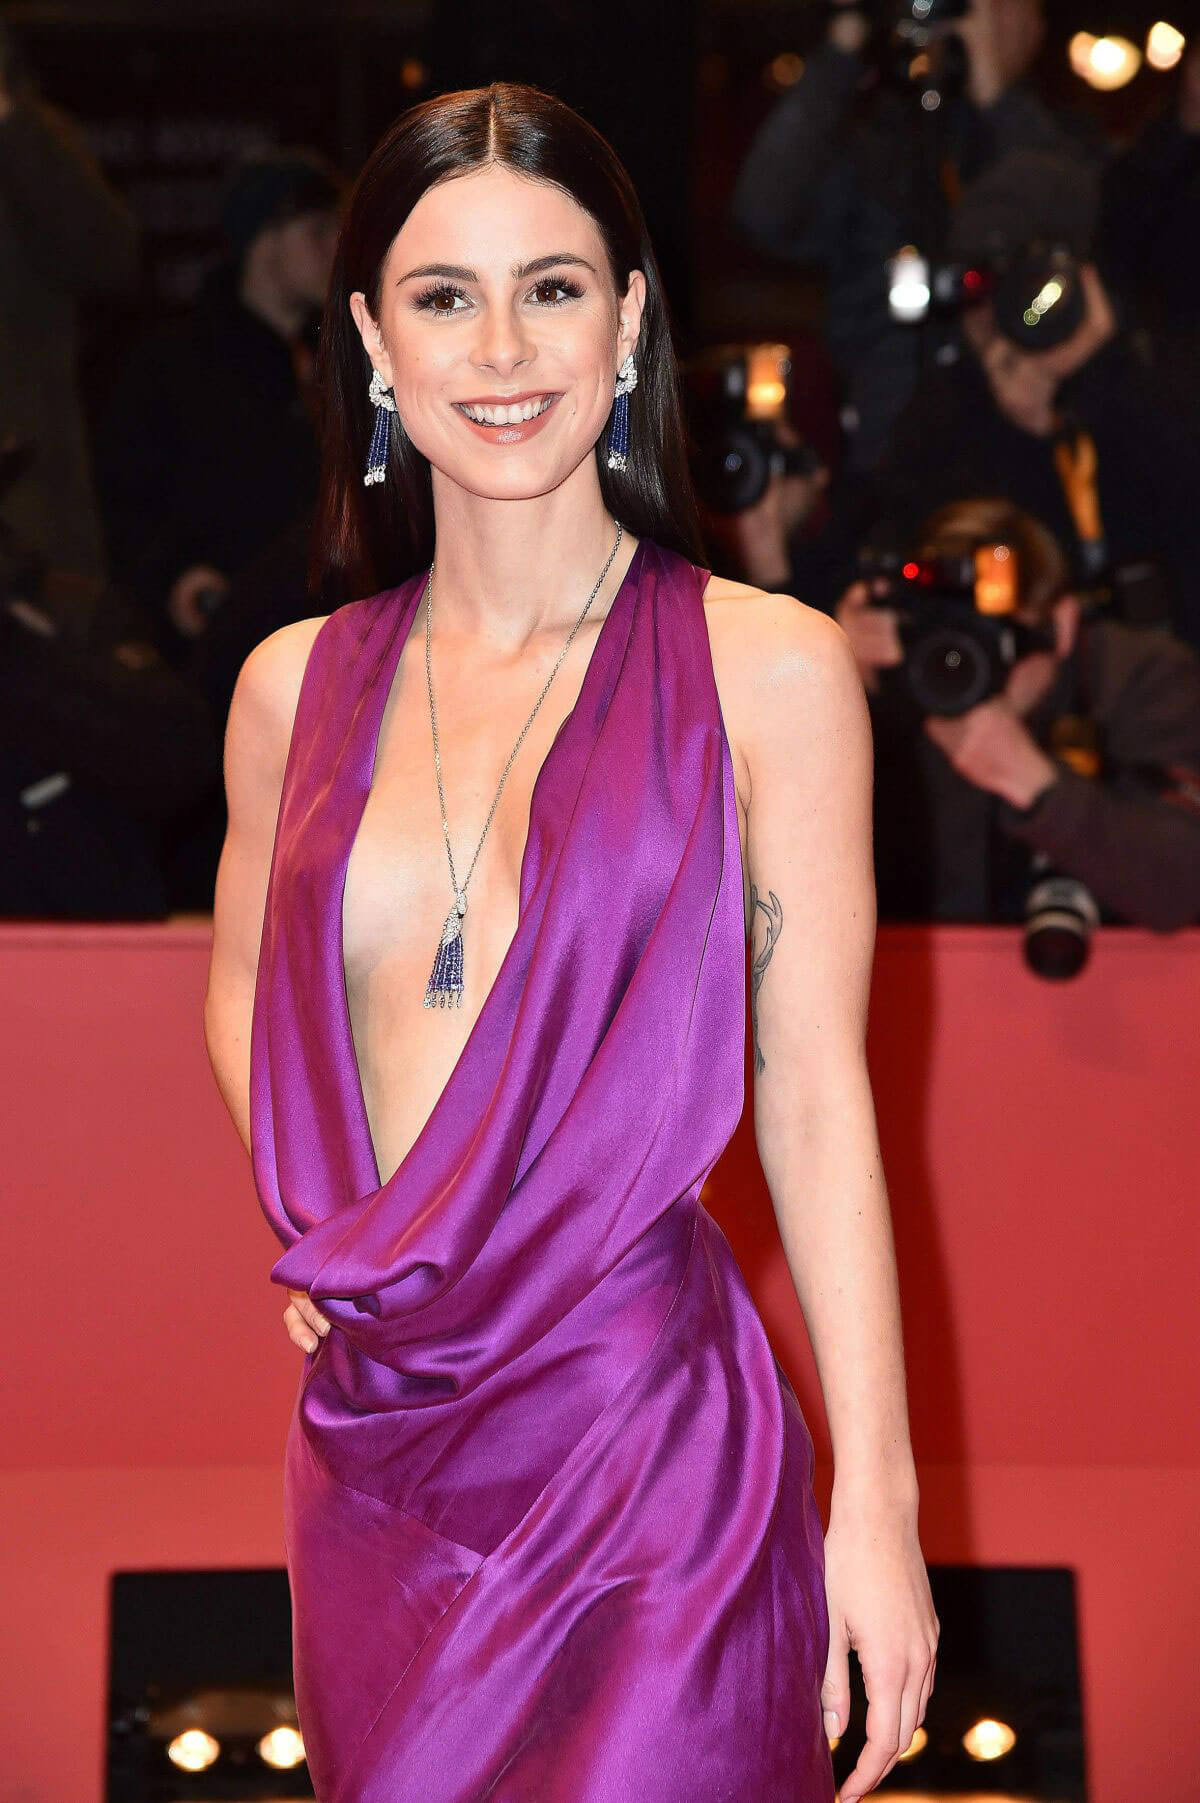 Lena Meyer-Landrut Stills at Berlinale Film Festival 2018/02/19